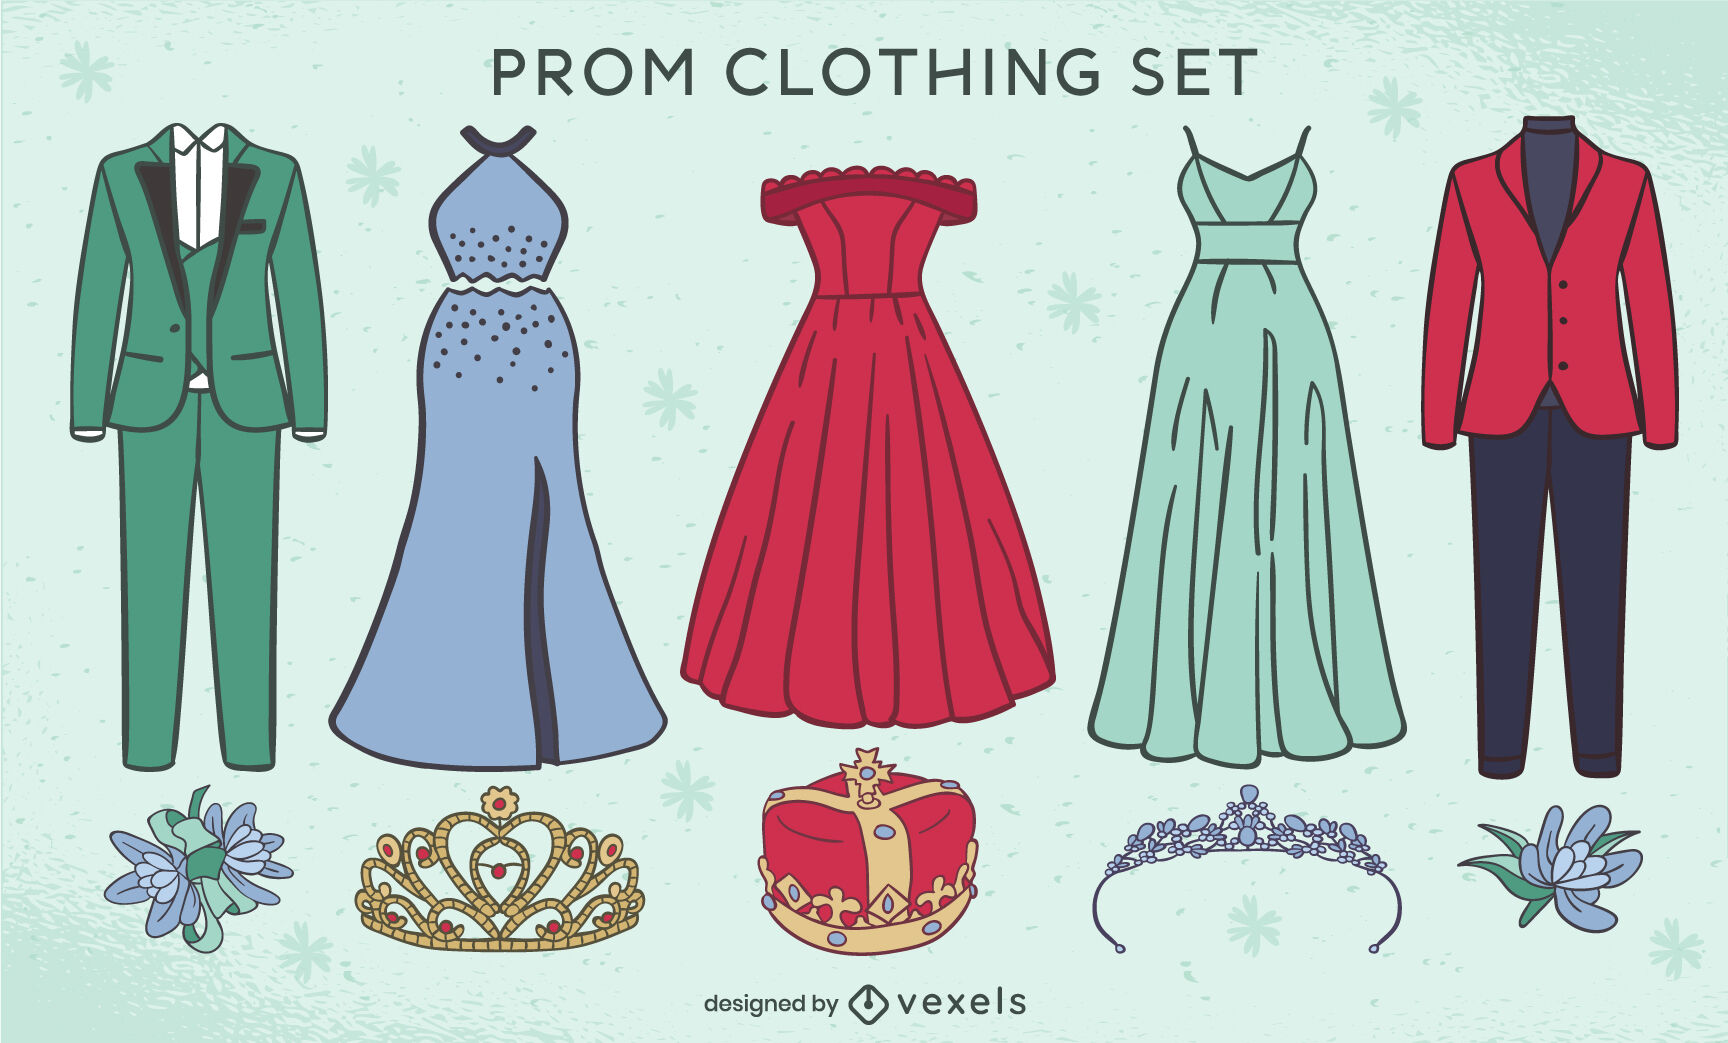 Prom formal party clothing attire set